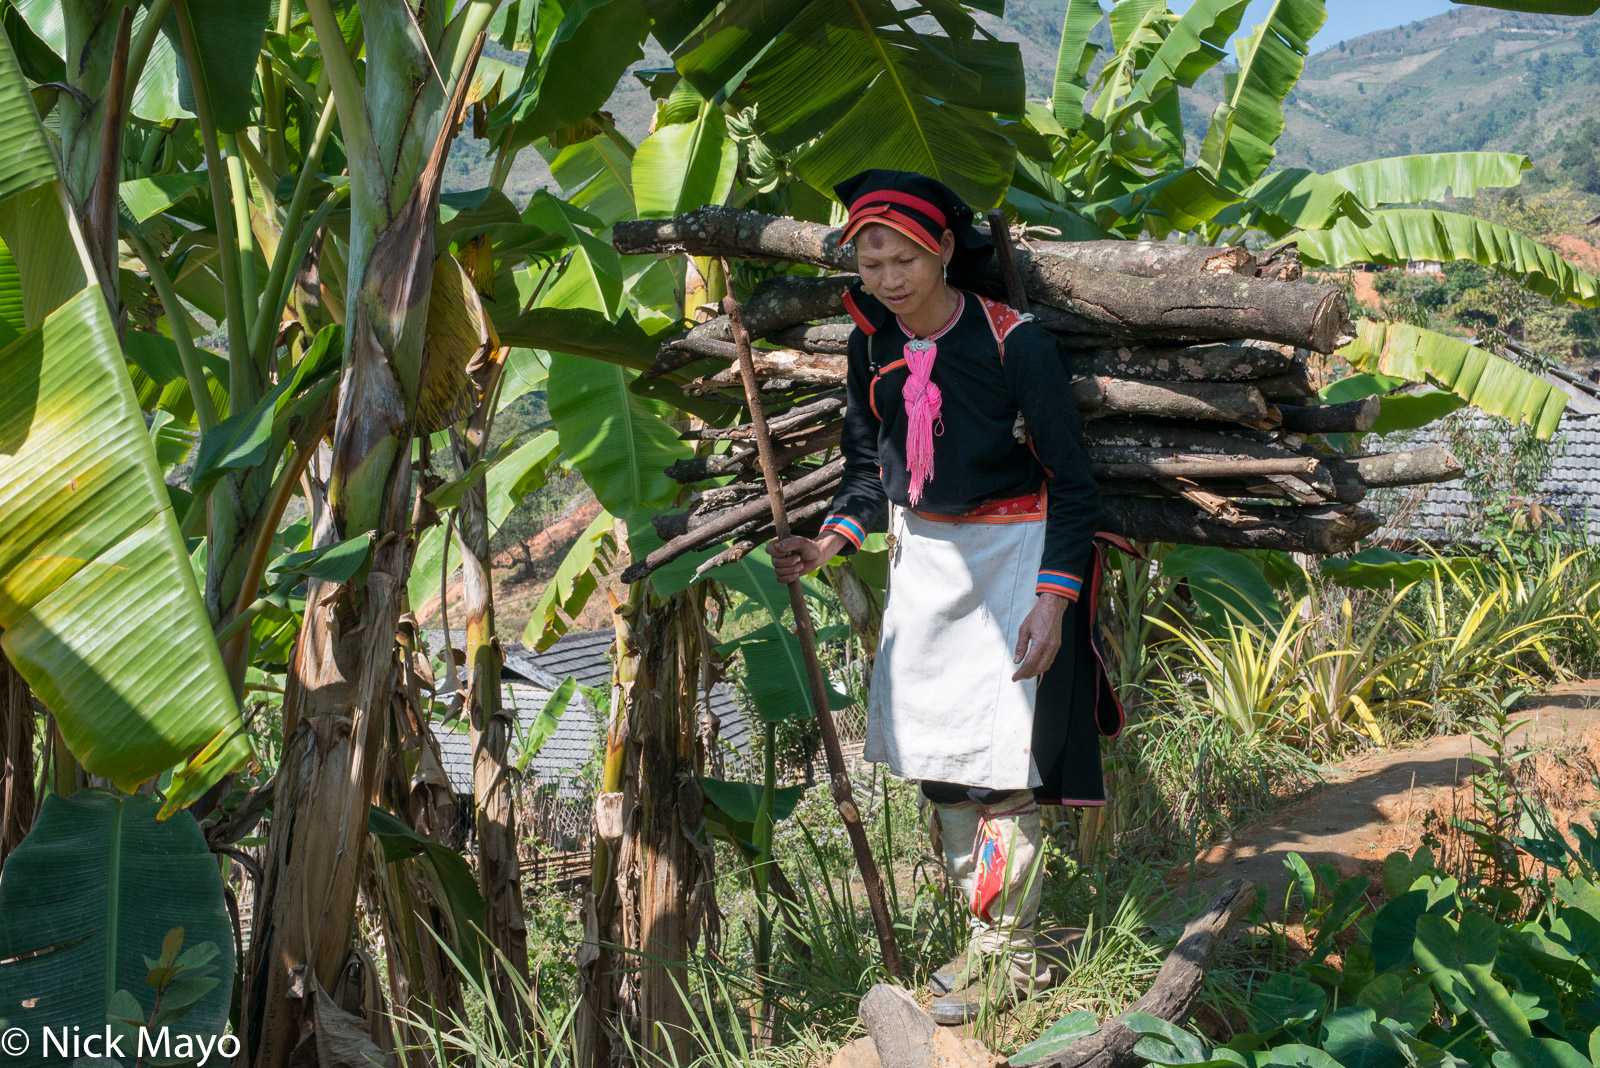 Apron, Earring, Firewood, Hat, Lai Chau, Leggings, Vietnam, Yao, photo